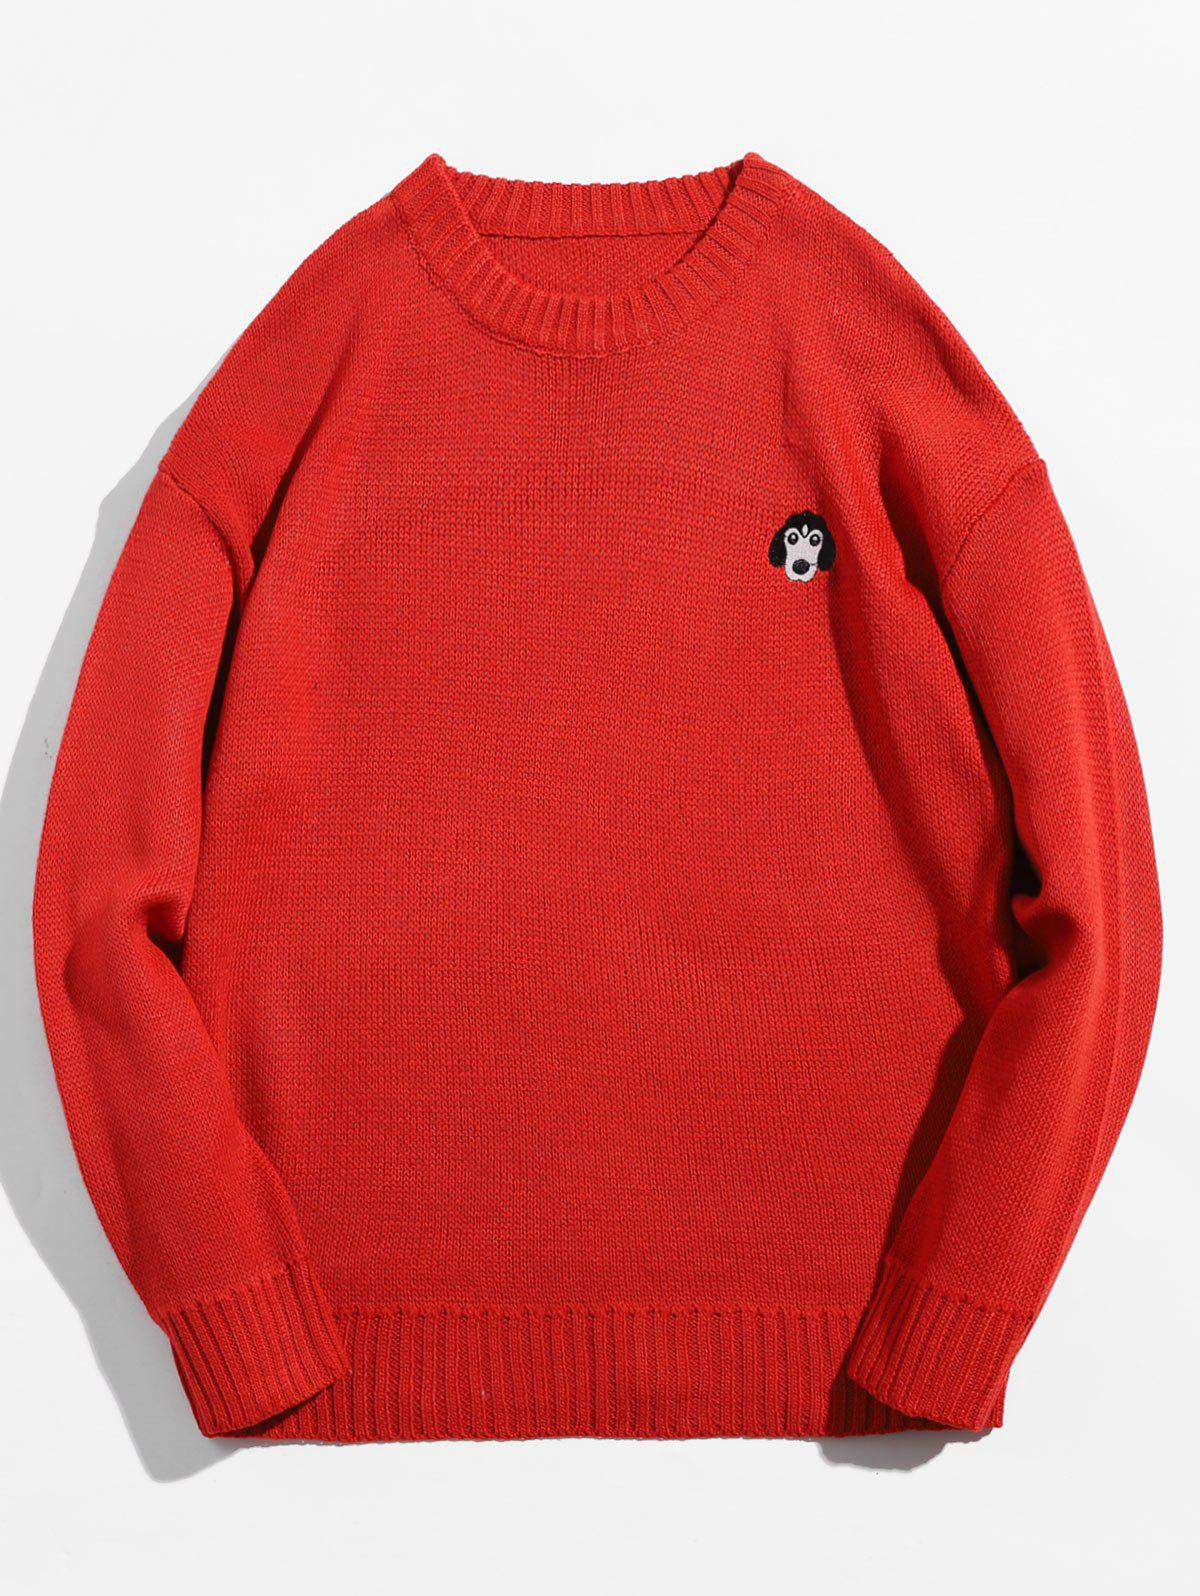 Animal Embroidery Pullover Crew Neck Sweater